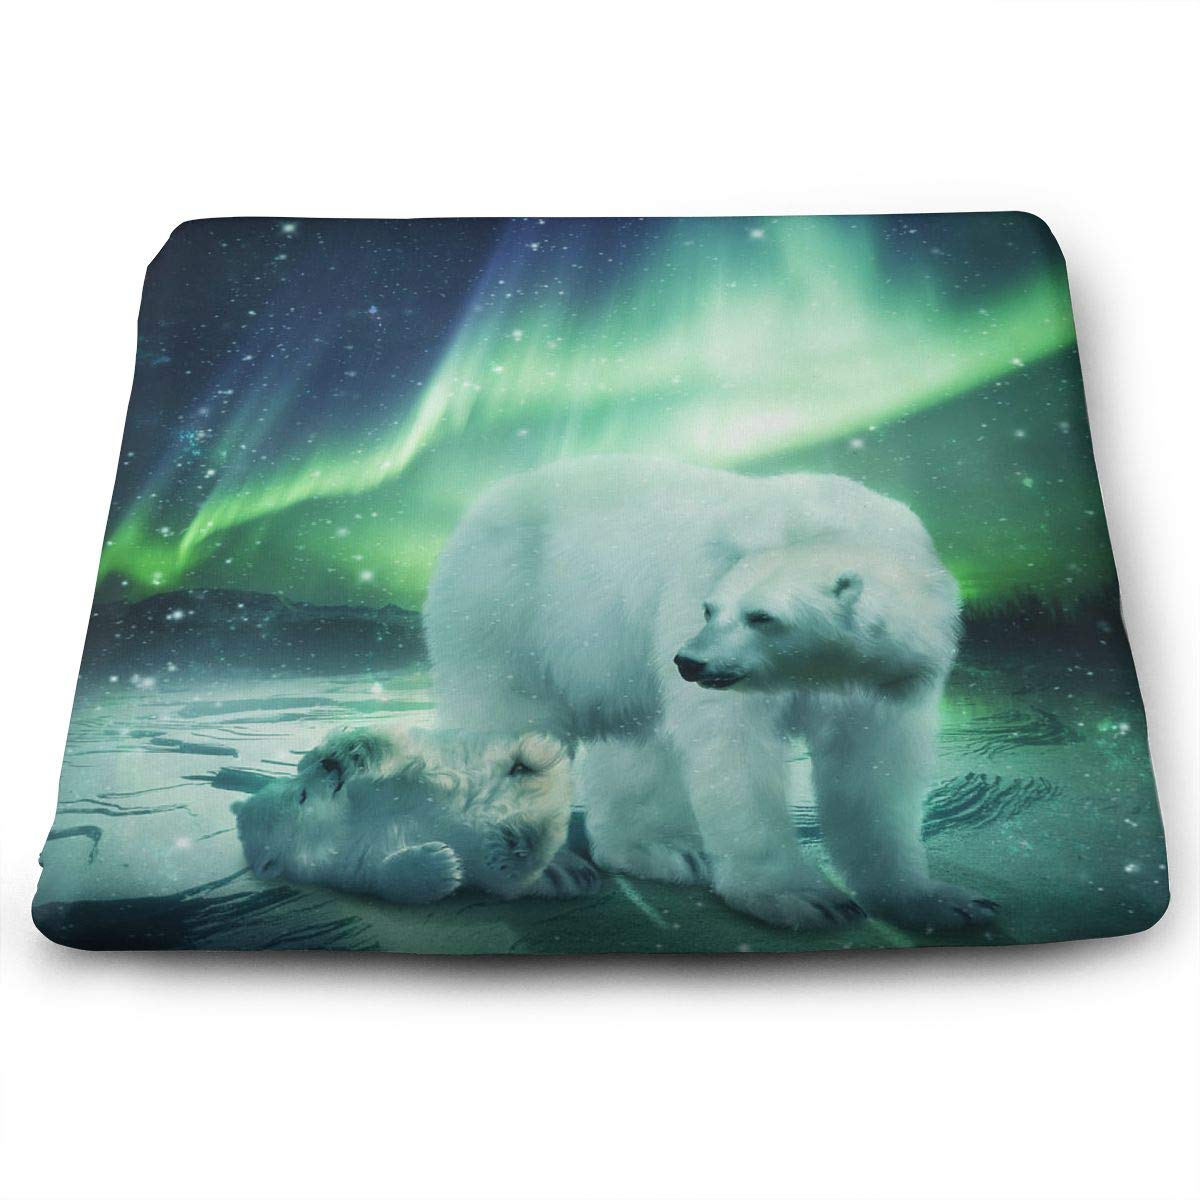 TLDRZD Novelty Perfect Indoor Outdoor Square Seat Cushion,Northern Lights Polar Bear Classic Crew Chair Pads Memory Foam Filled for Patio,Office,Kitchen,Desk,Travel,Kids,Yoga